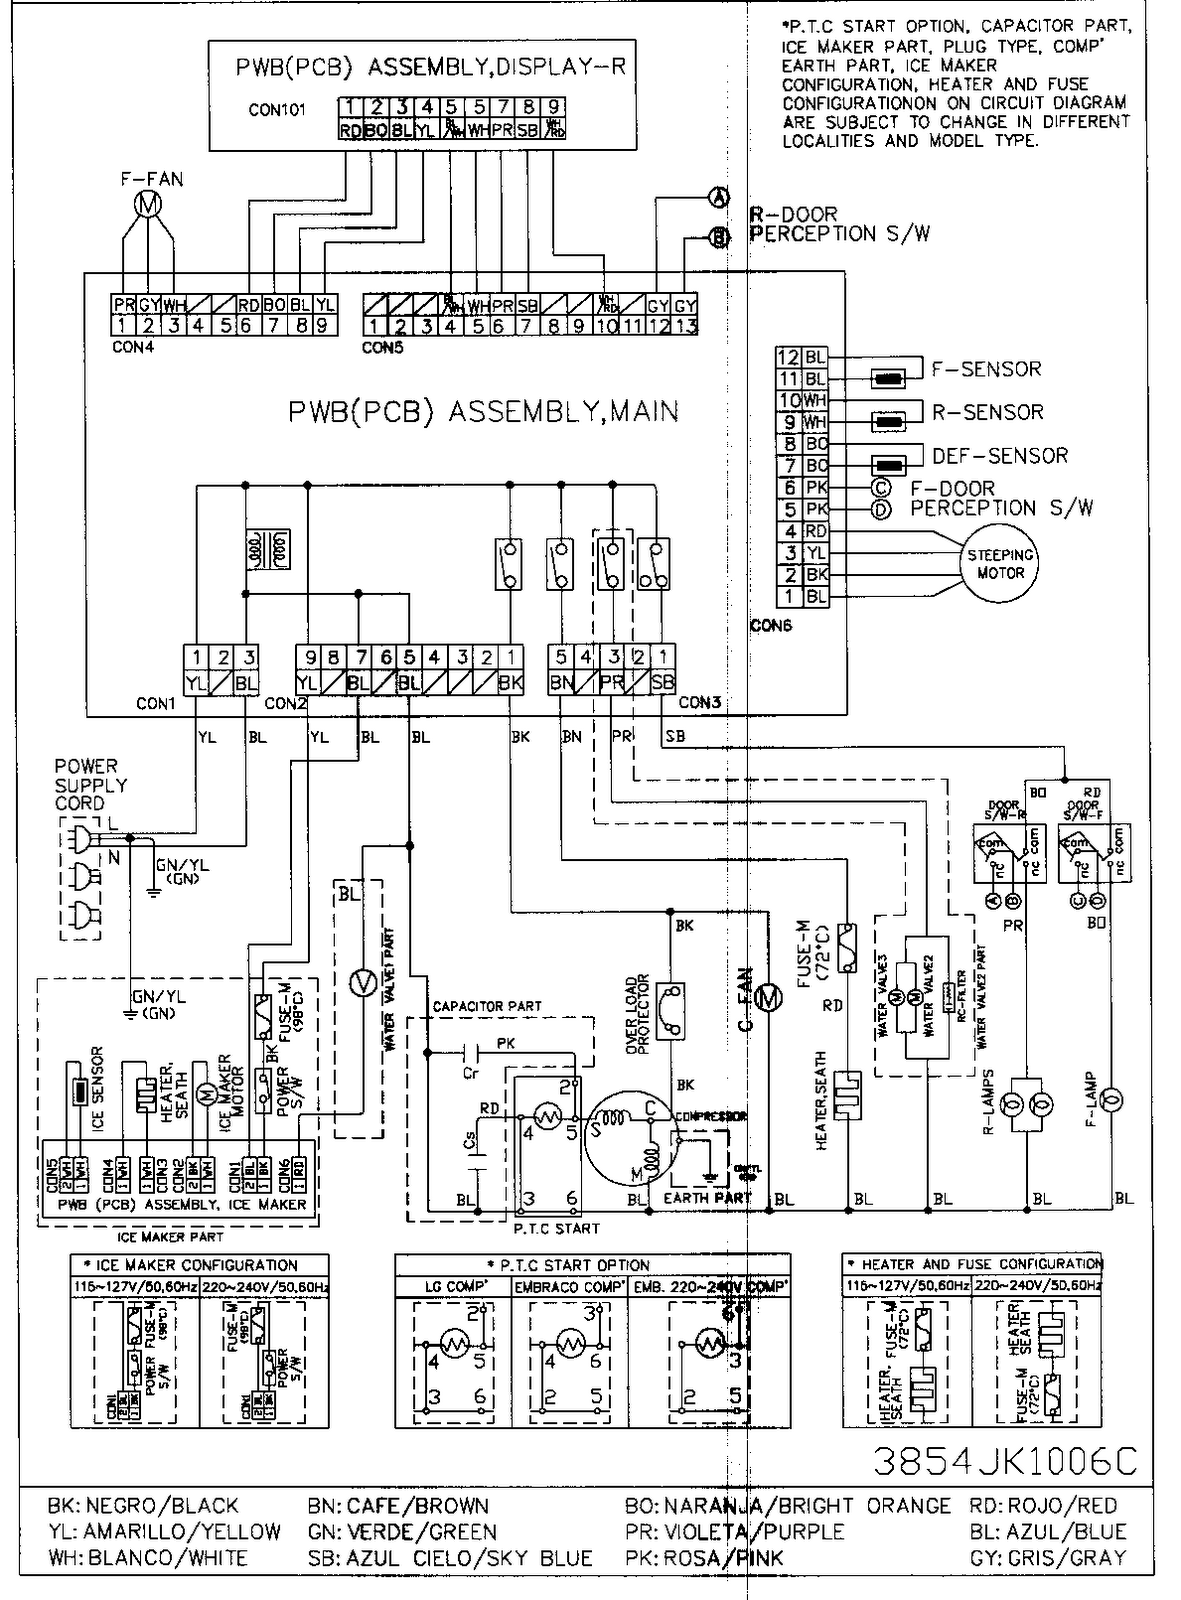 lg refrigerator pressor wiring diagram technology of 2 day: 2012-02-05 1996 camry a c pressor wiring diagram